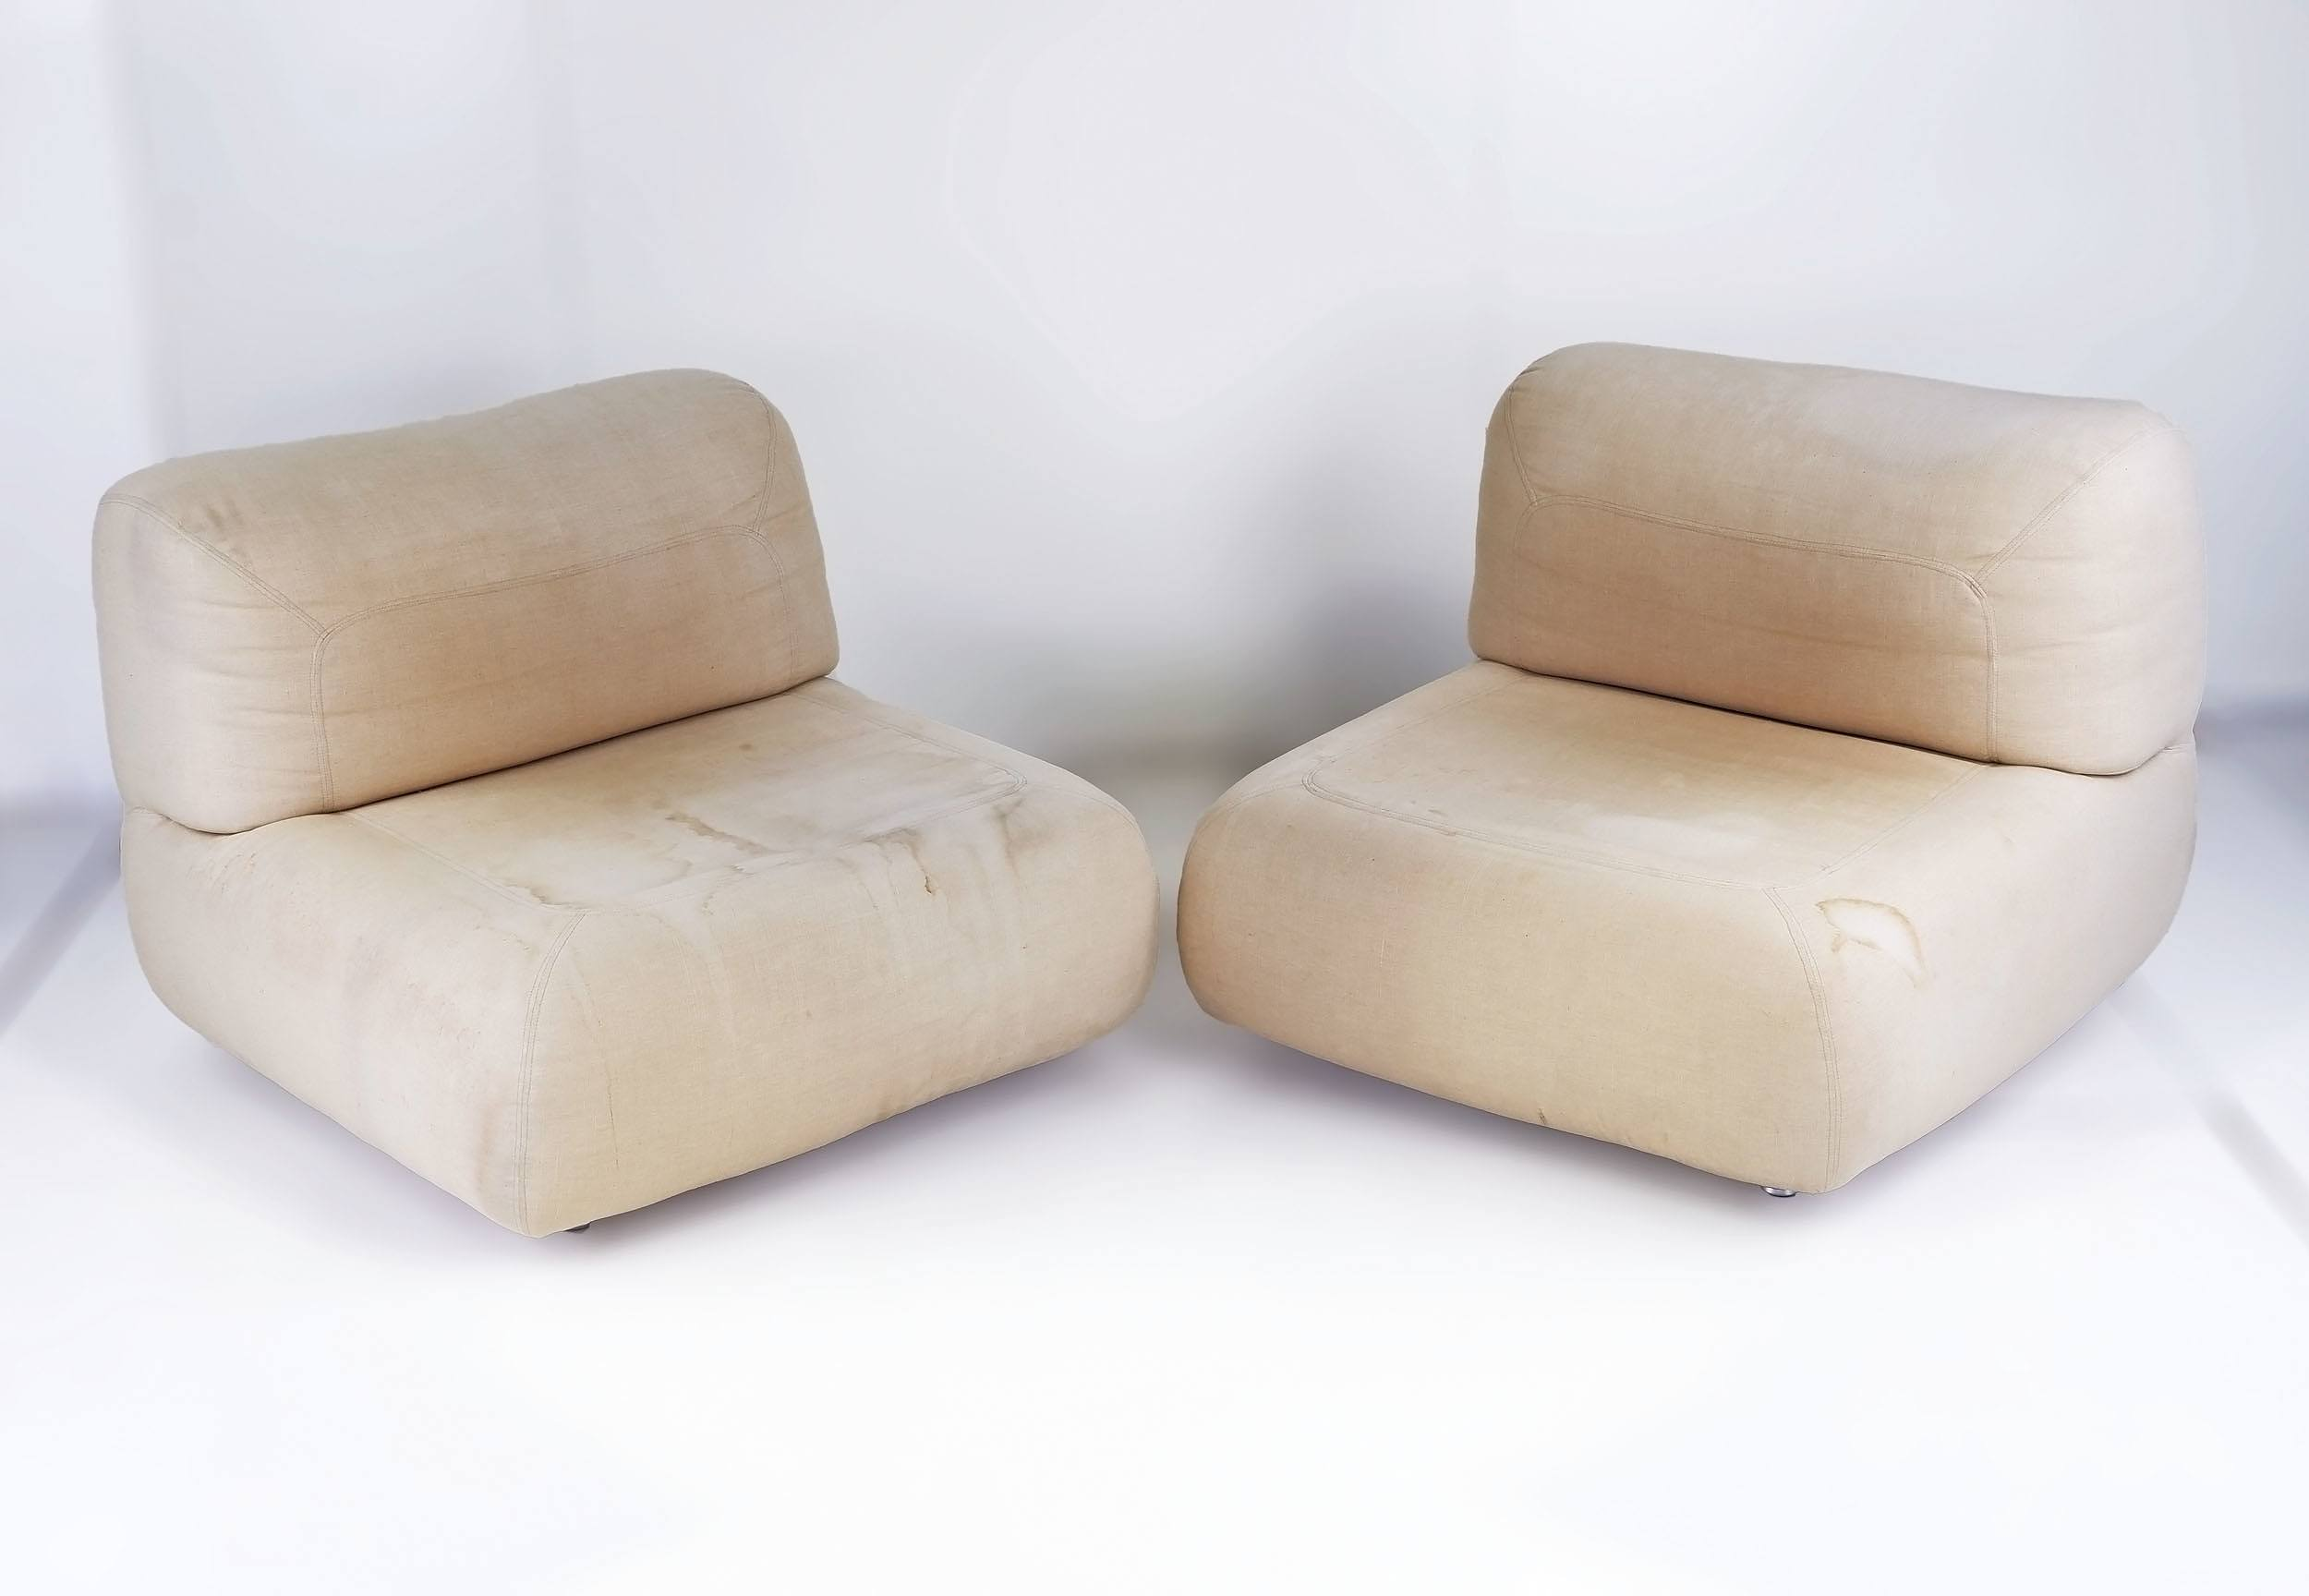 'Pair of 1970s Modernist Lounge Chairs, Unmarked, Likely Denmark or Italy'